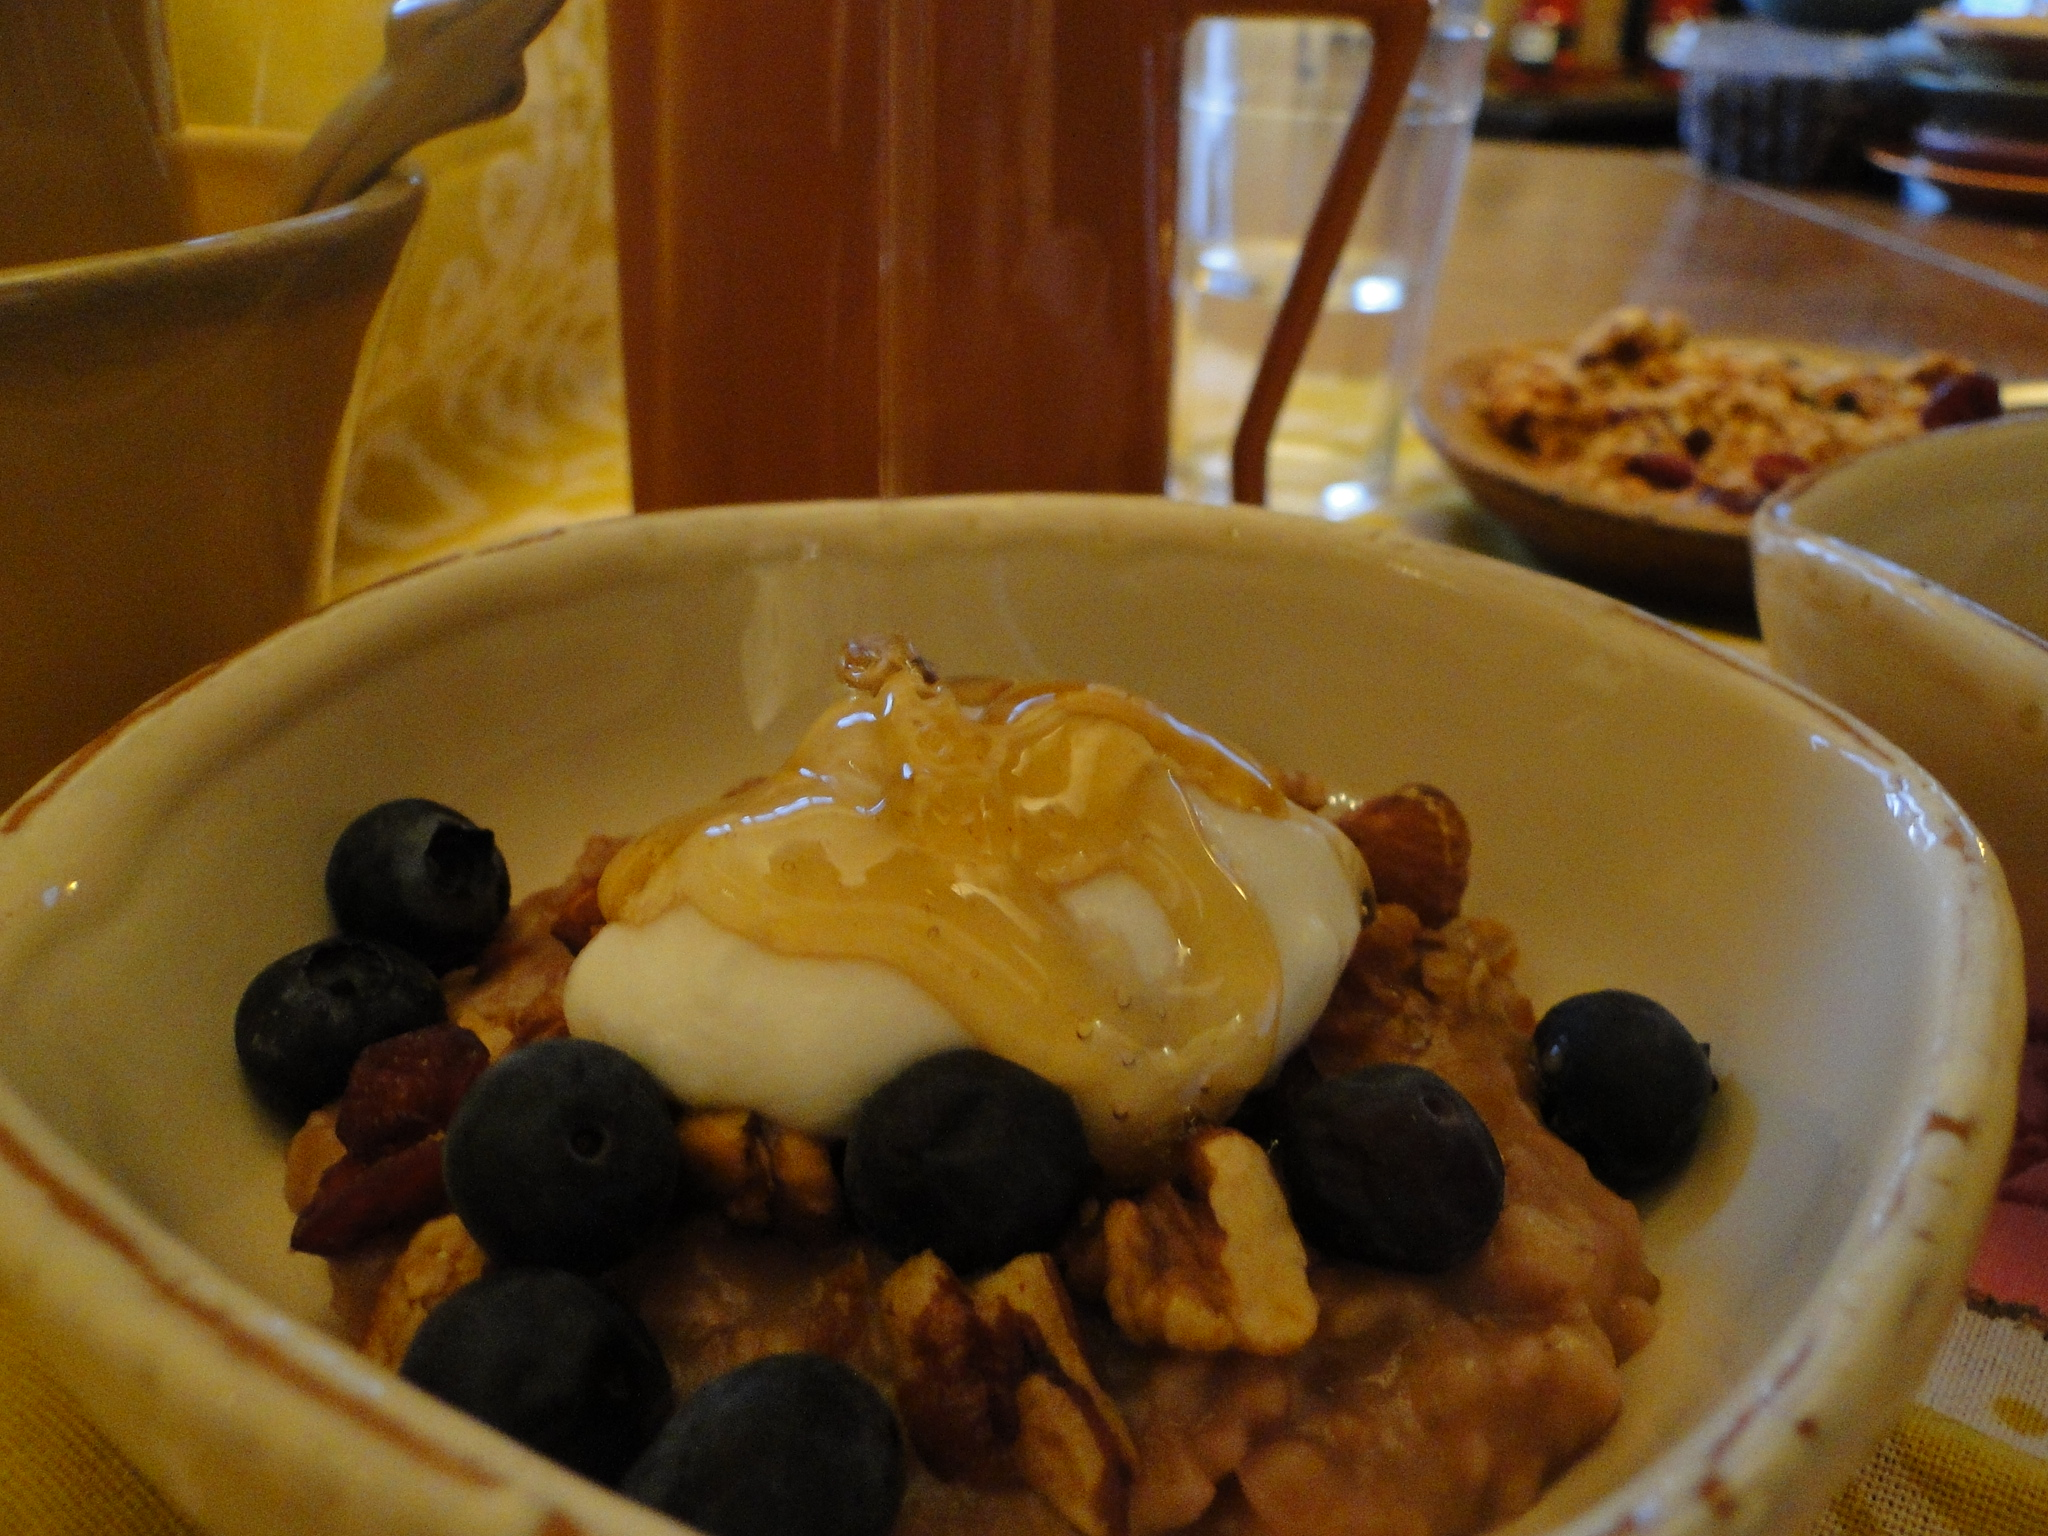 Steel cut oats and granola